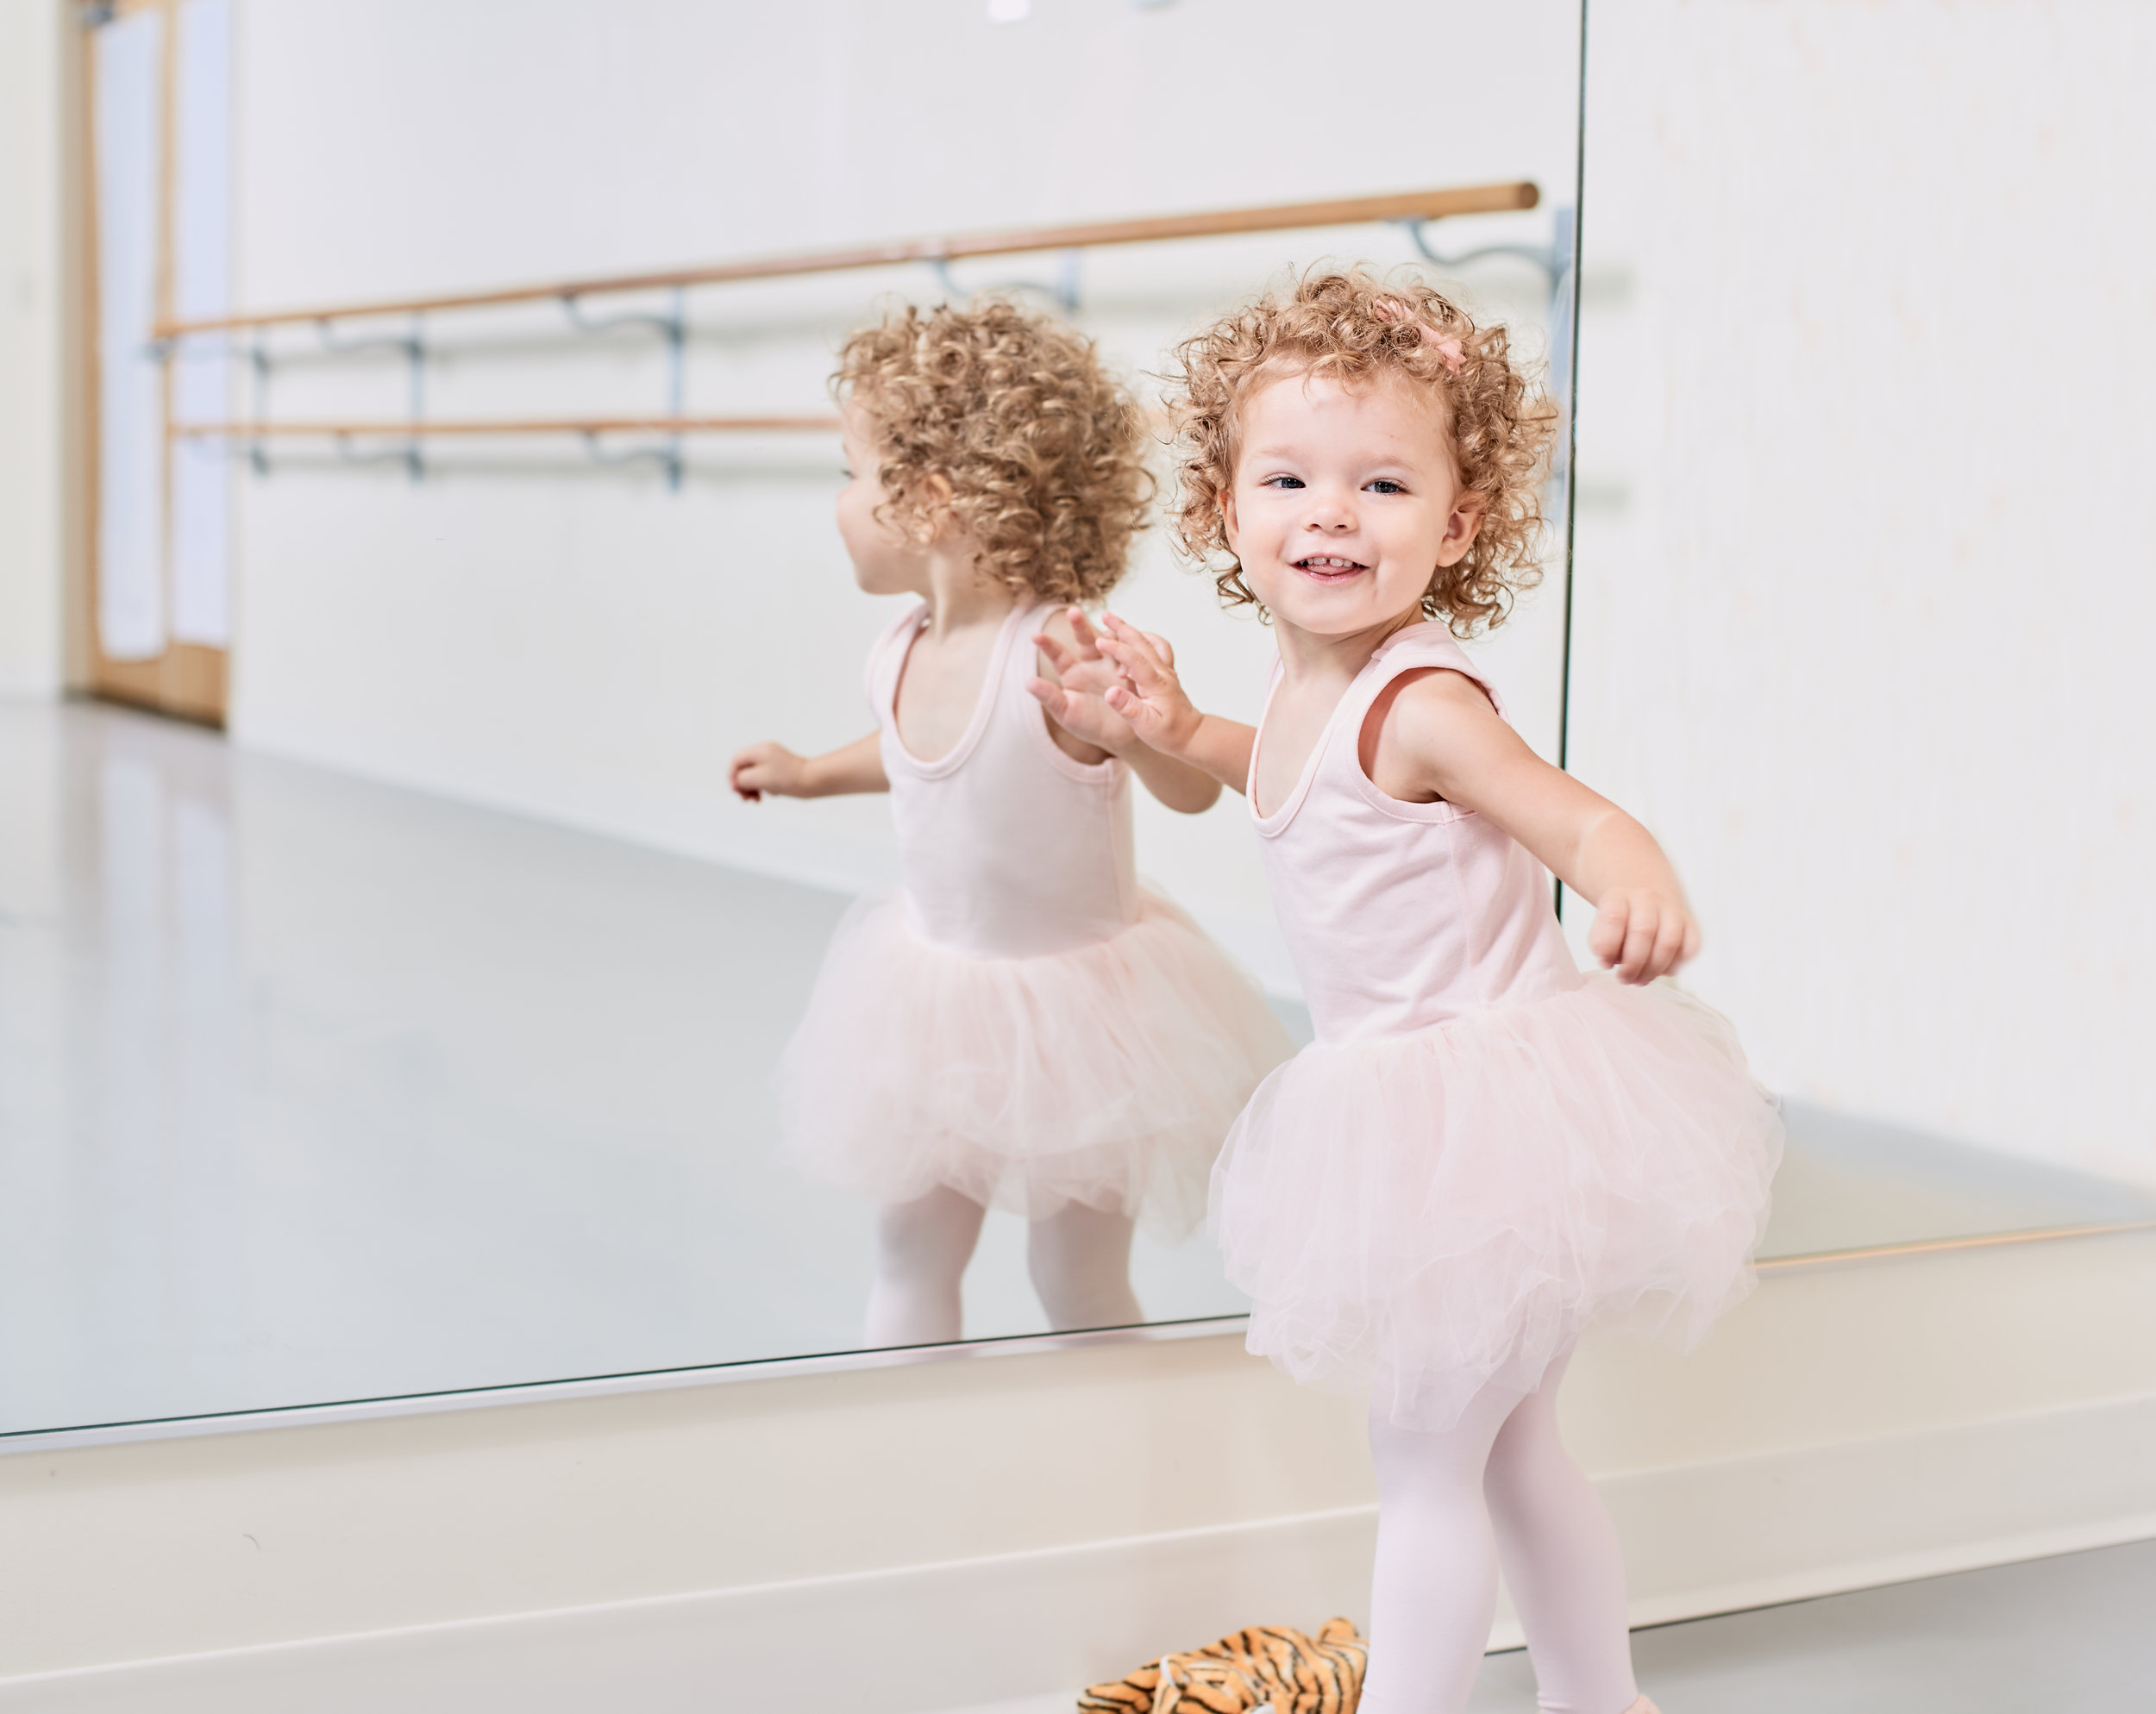 Ballet Royale Website Baby in mirror.jpg